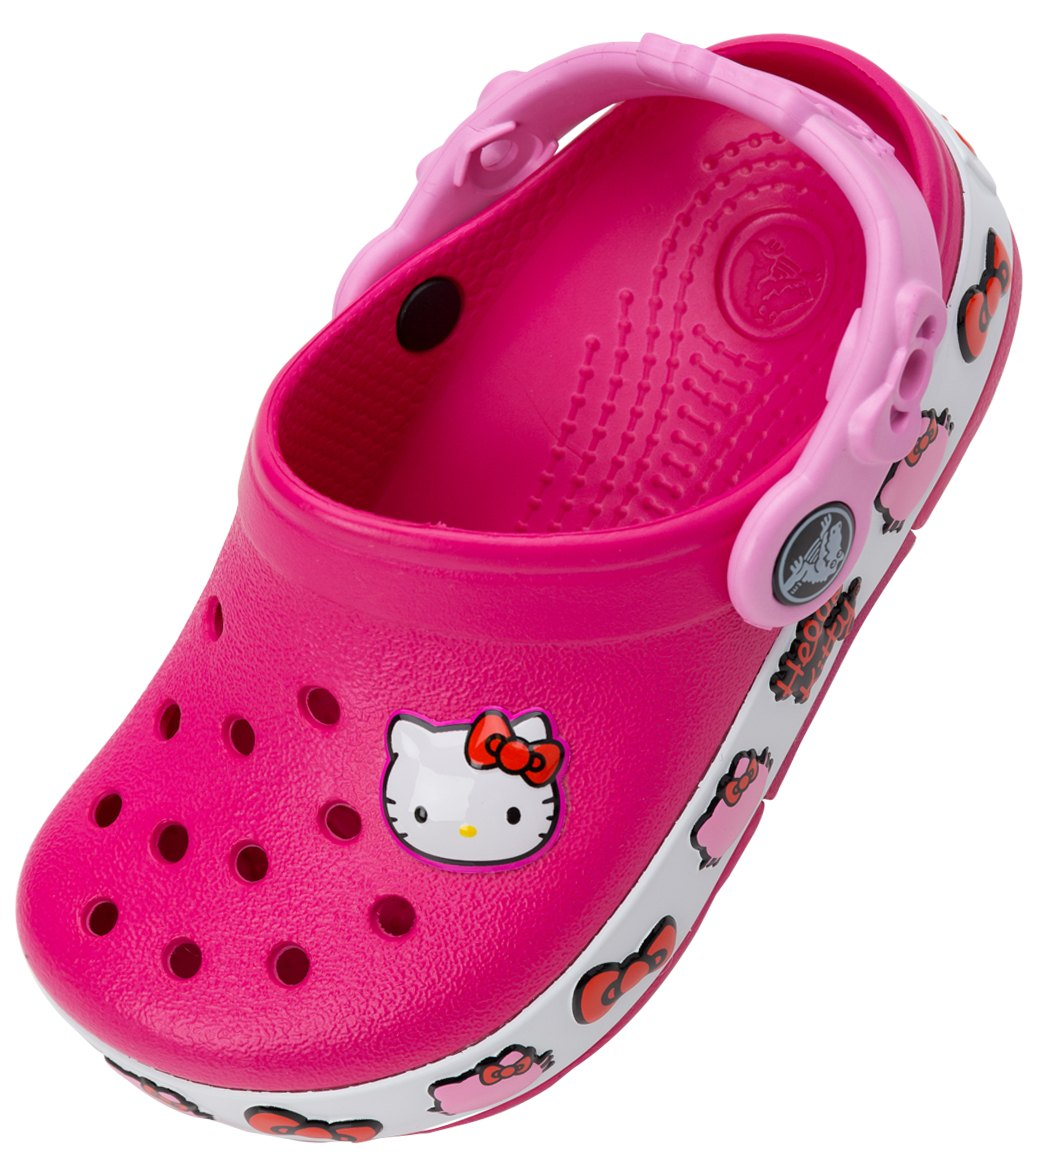 c1312e45fa709 Crocs Lights Hello Kitty at SwimOutlet.com